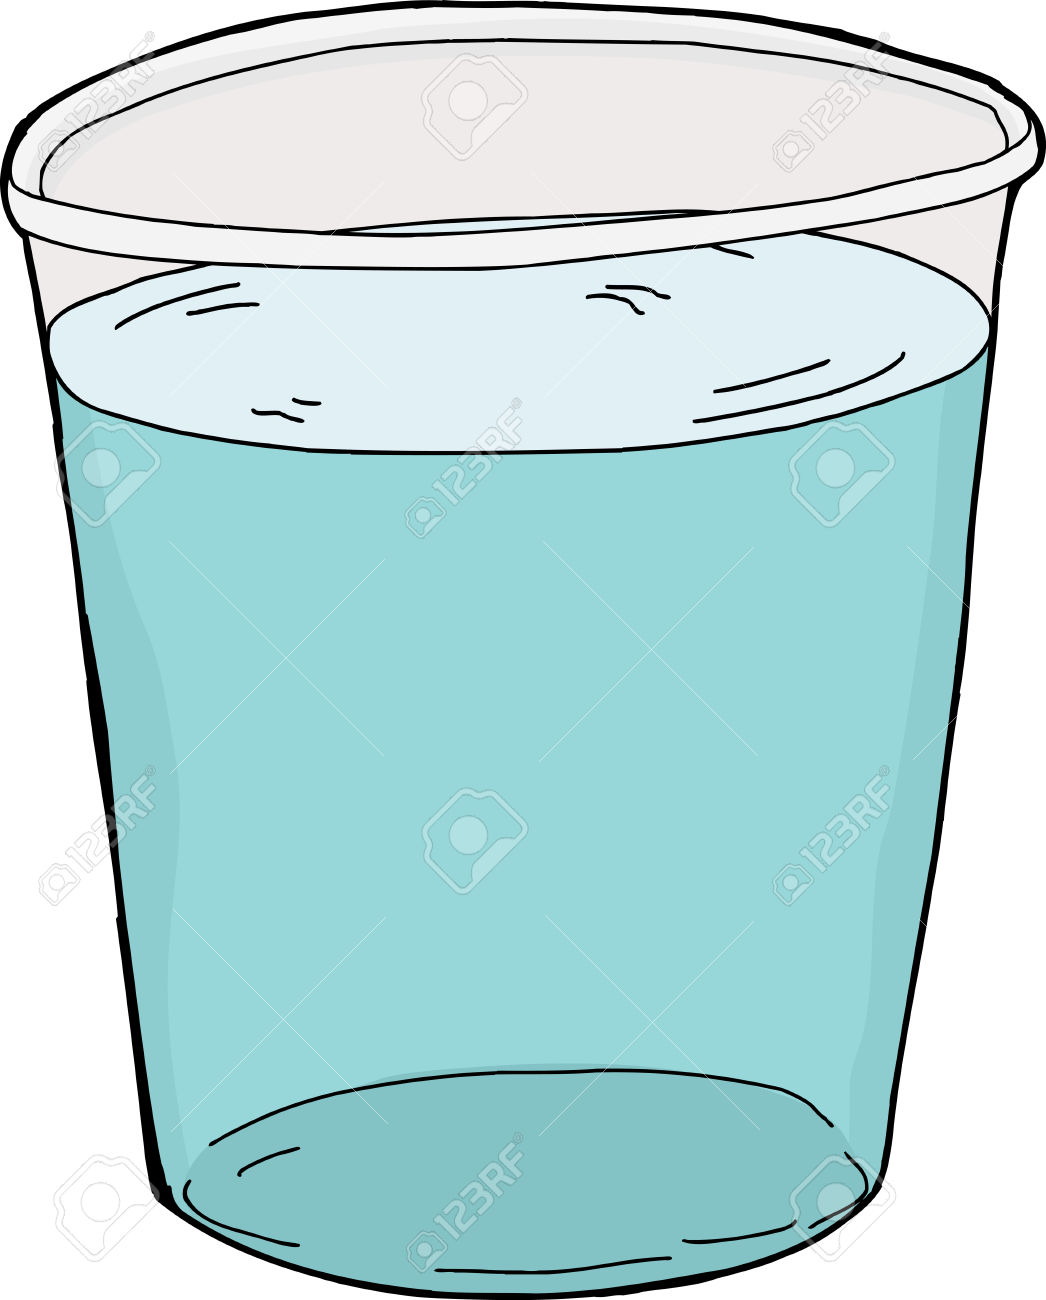 Glass Full Of Water Clipart.